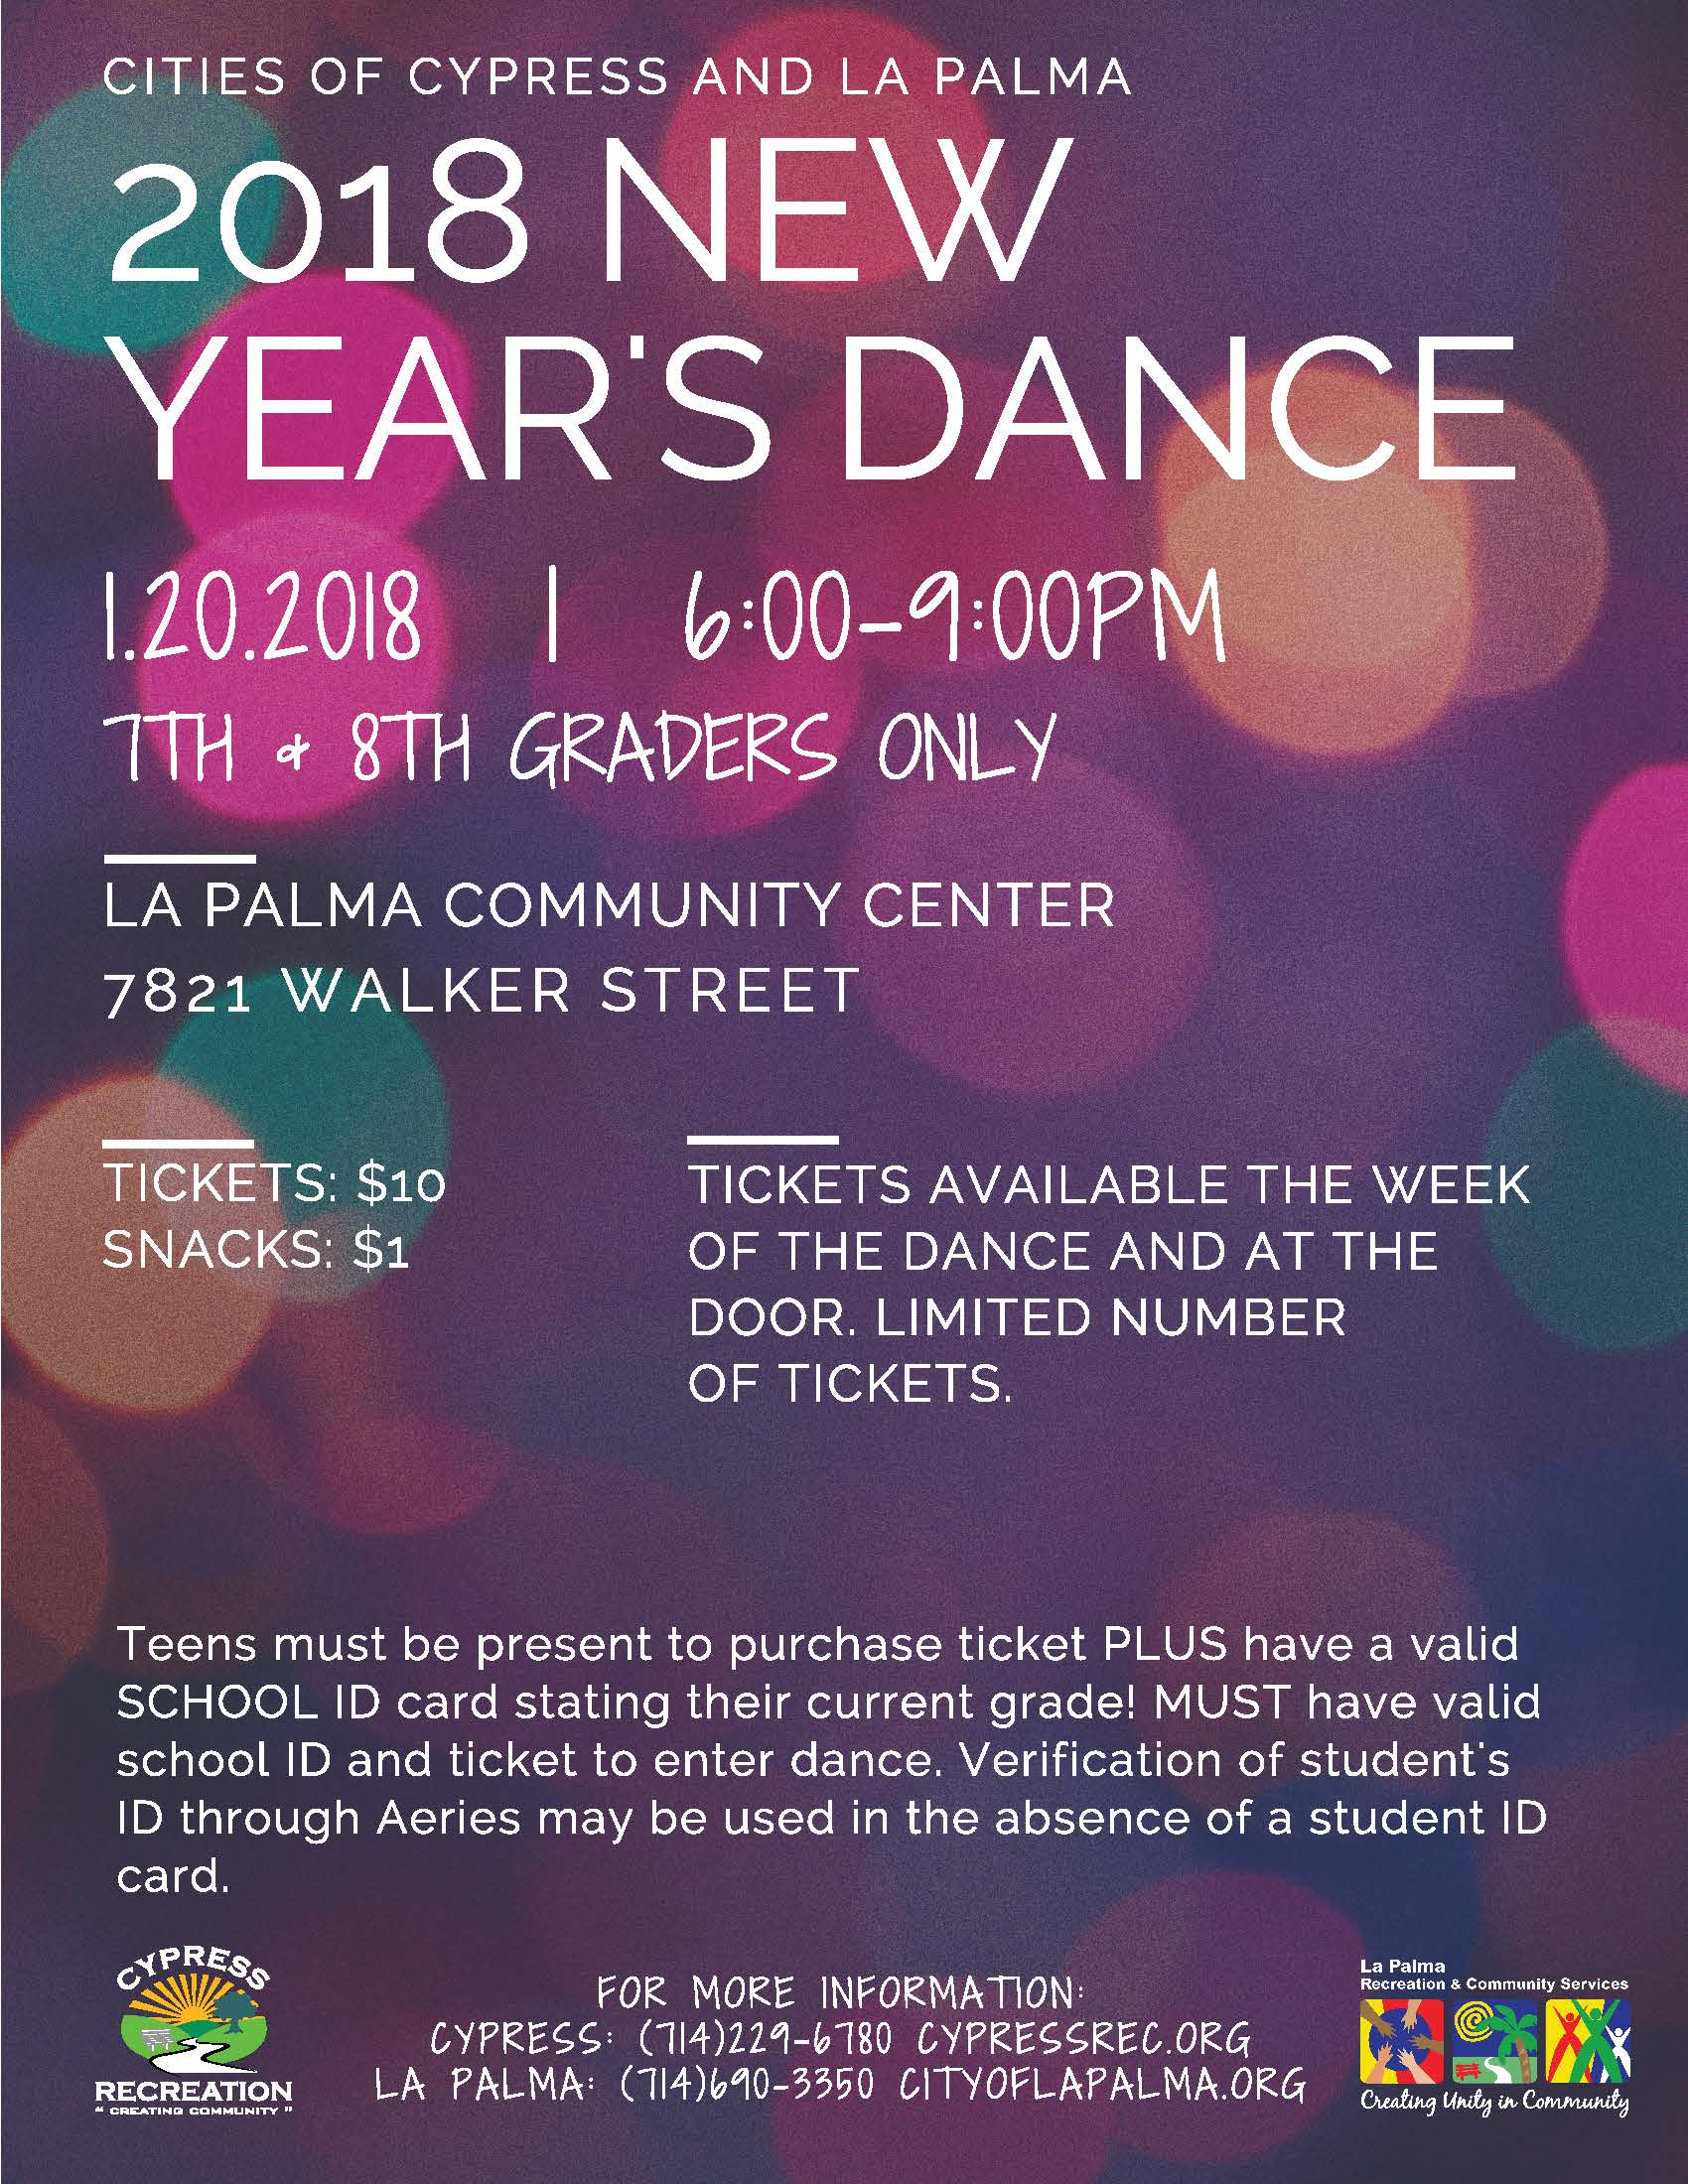 2018 New Years Dance